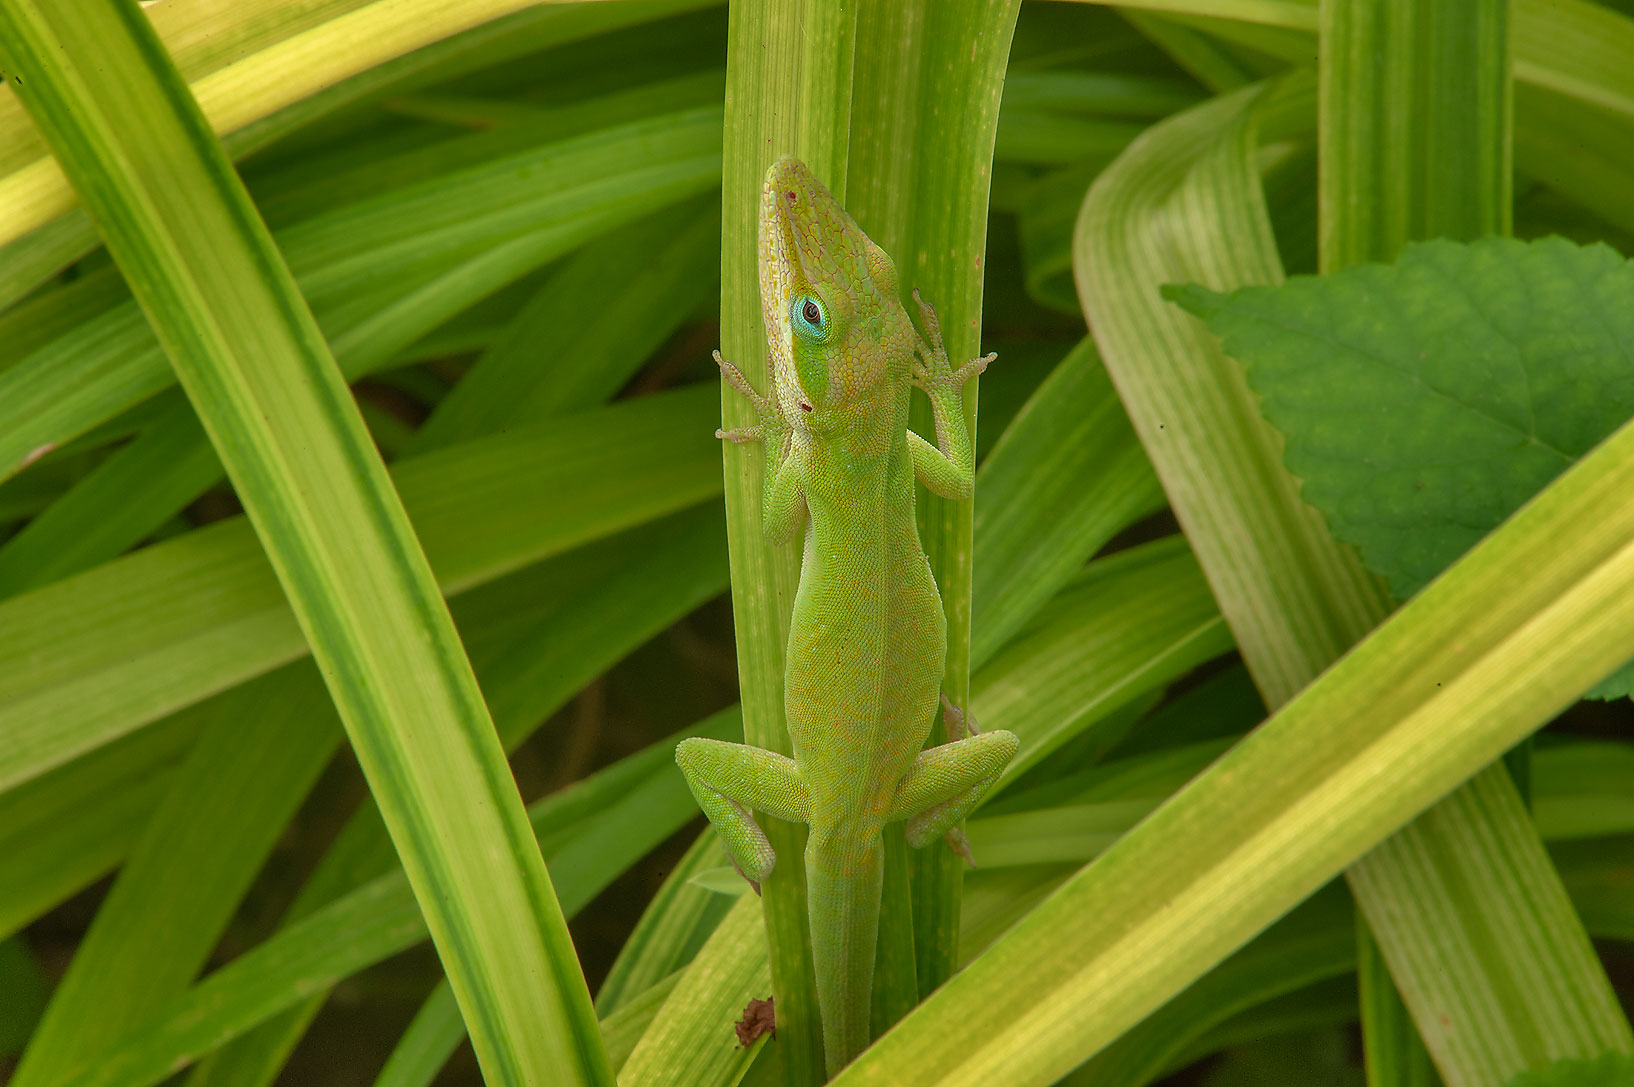 Green anole lizard hiding in grass in Antique Rose Emporium. Independence, Texas